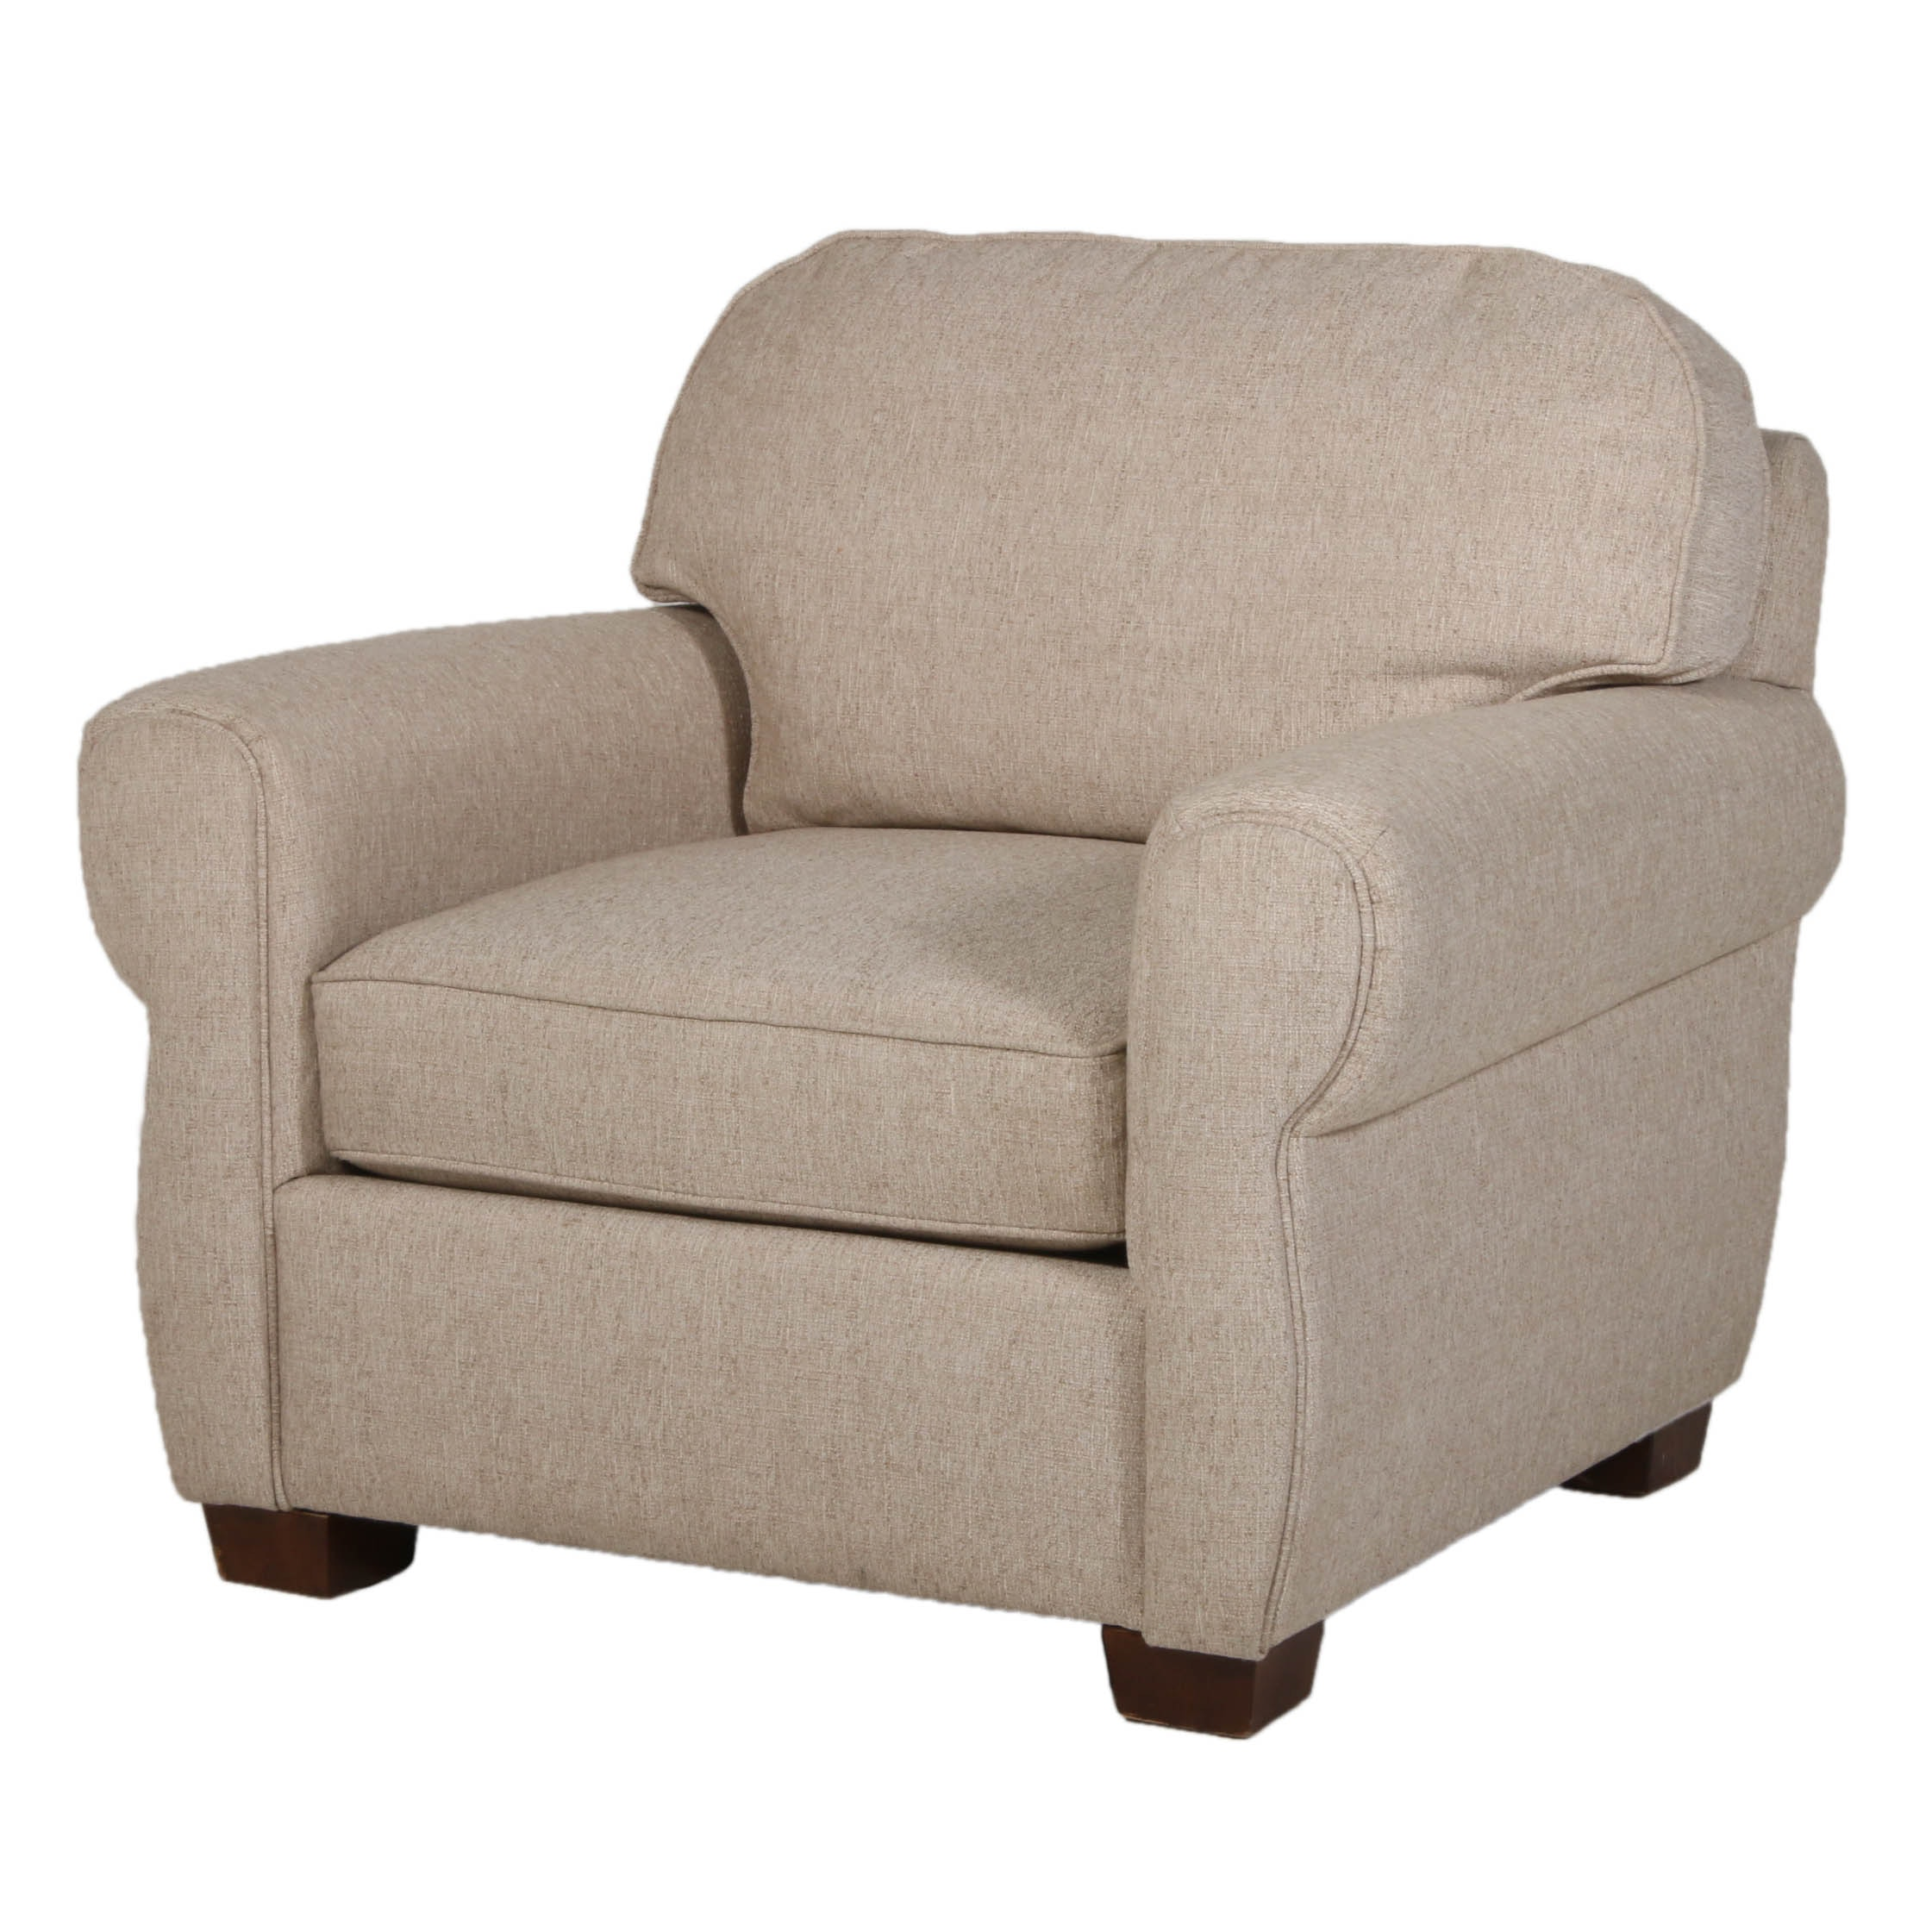 Broyhill for Frontroom Furnishings Upholstered Armchair